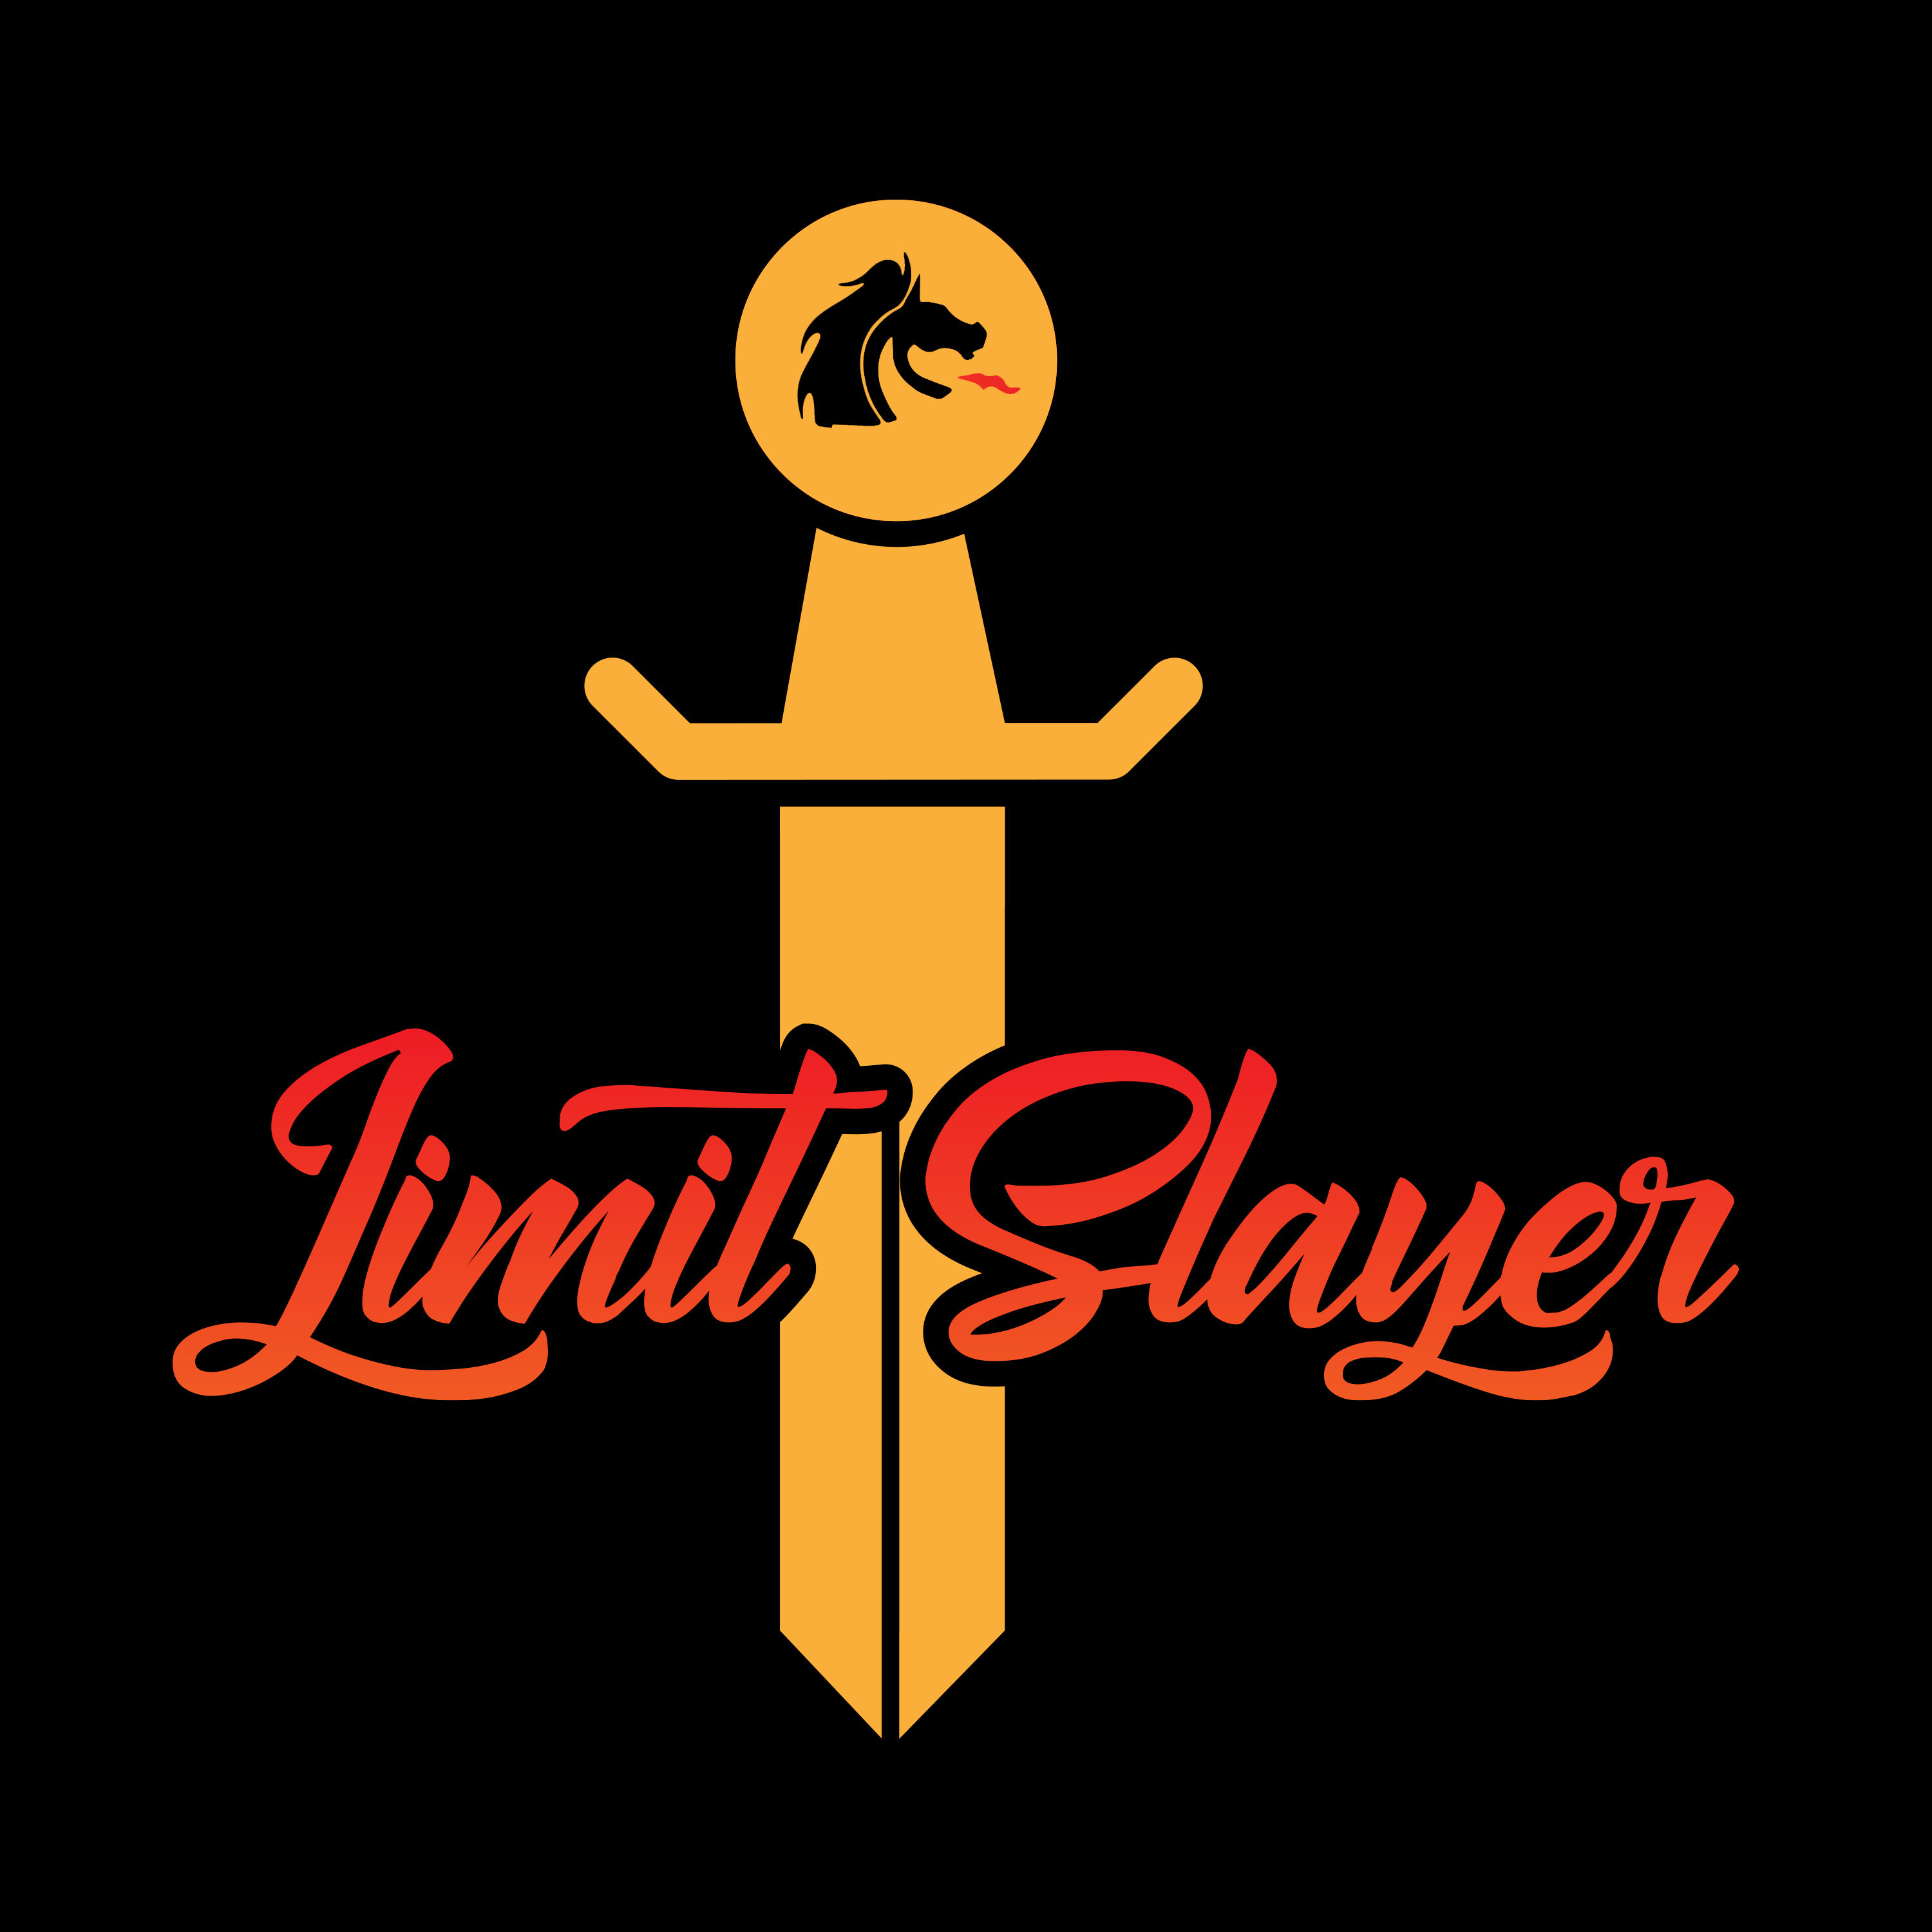 Limit Slayer Podcast Podcast - Listen, Reviews, Charts - Chartable